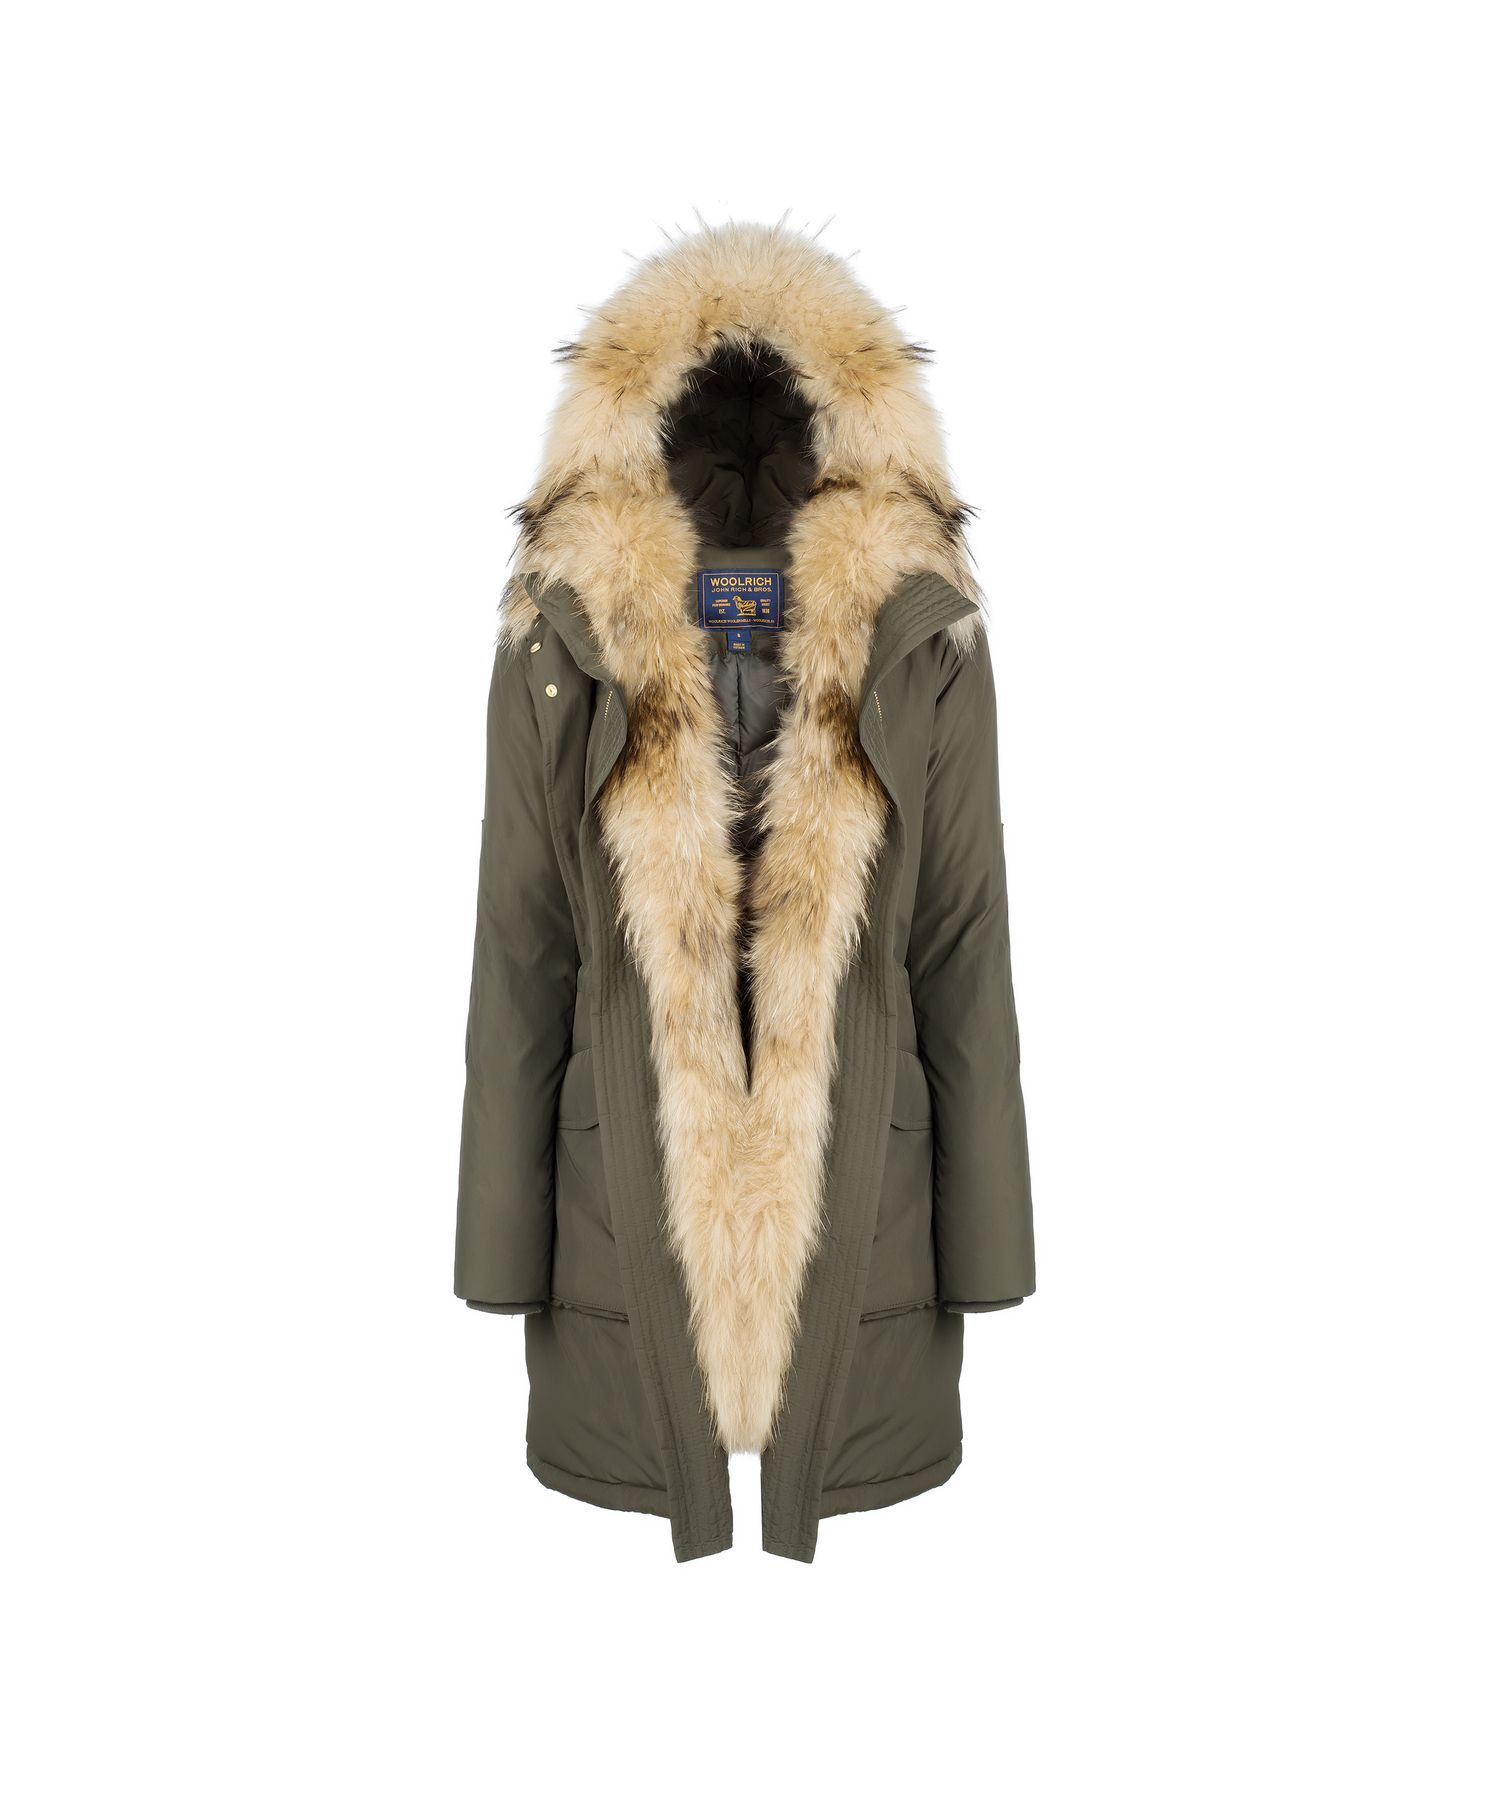 Women S Military Eskimo By Woolrich The Original Outdoor Clothing Company Outdoor Outfit Outdoor Clothing Stores Womens Outdoor Clothing